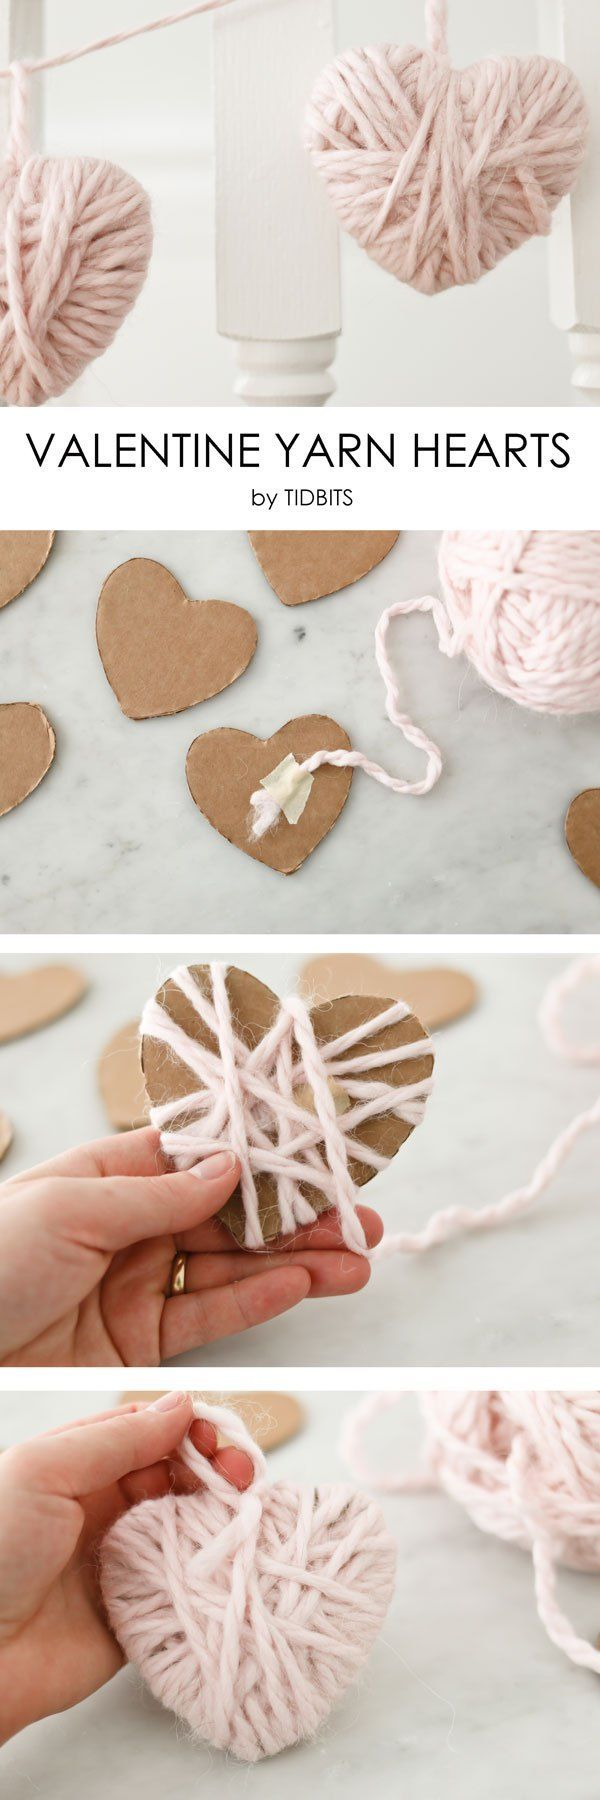 3738 best Home crafts images on Pinterest | Creative ideas ...